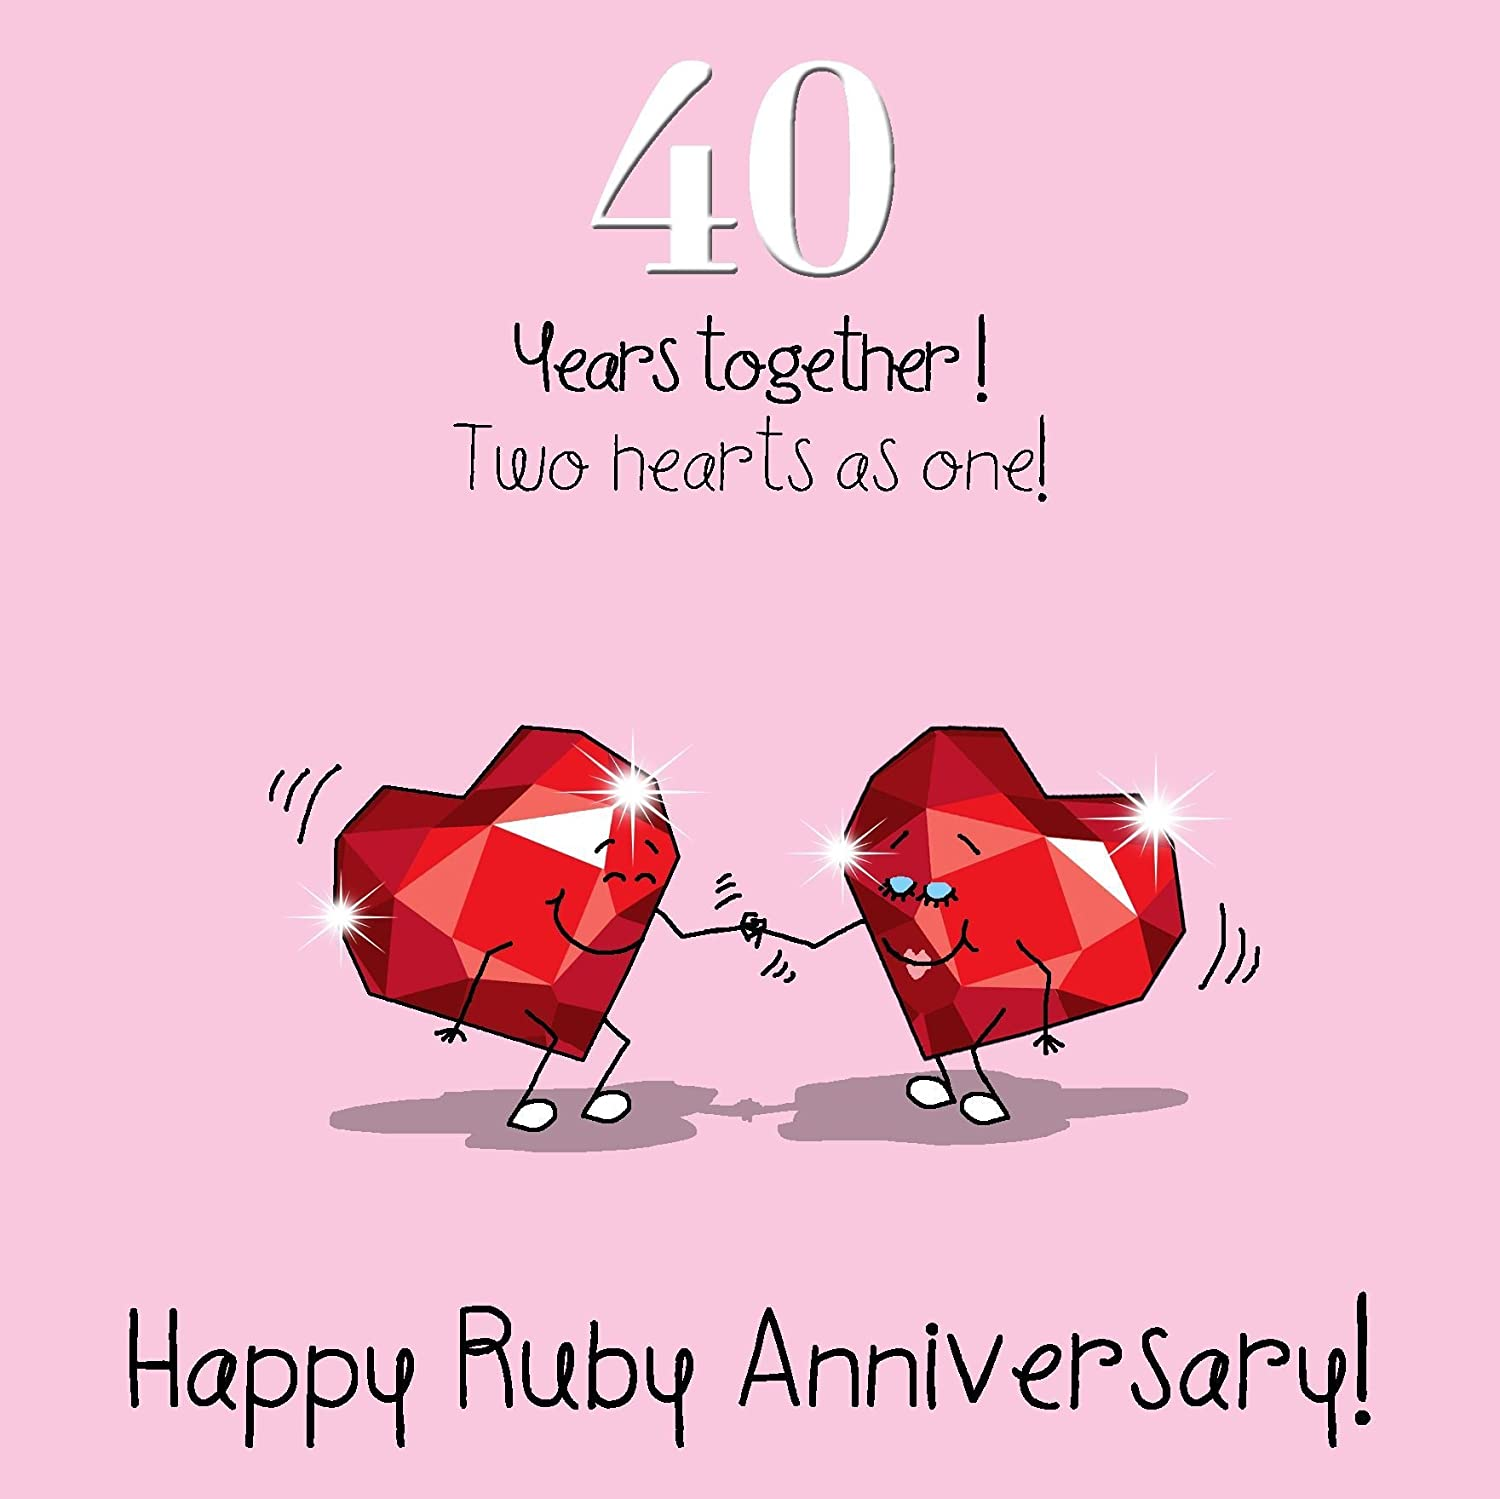 40th Wedding Anniversary Greetings Card - Ruby Anniversary Fax Potato